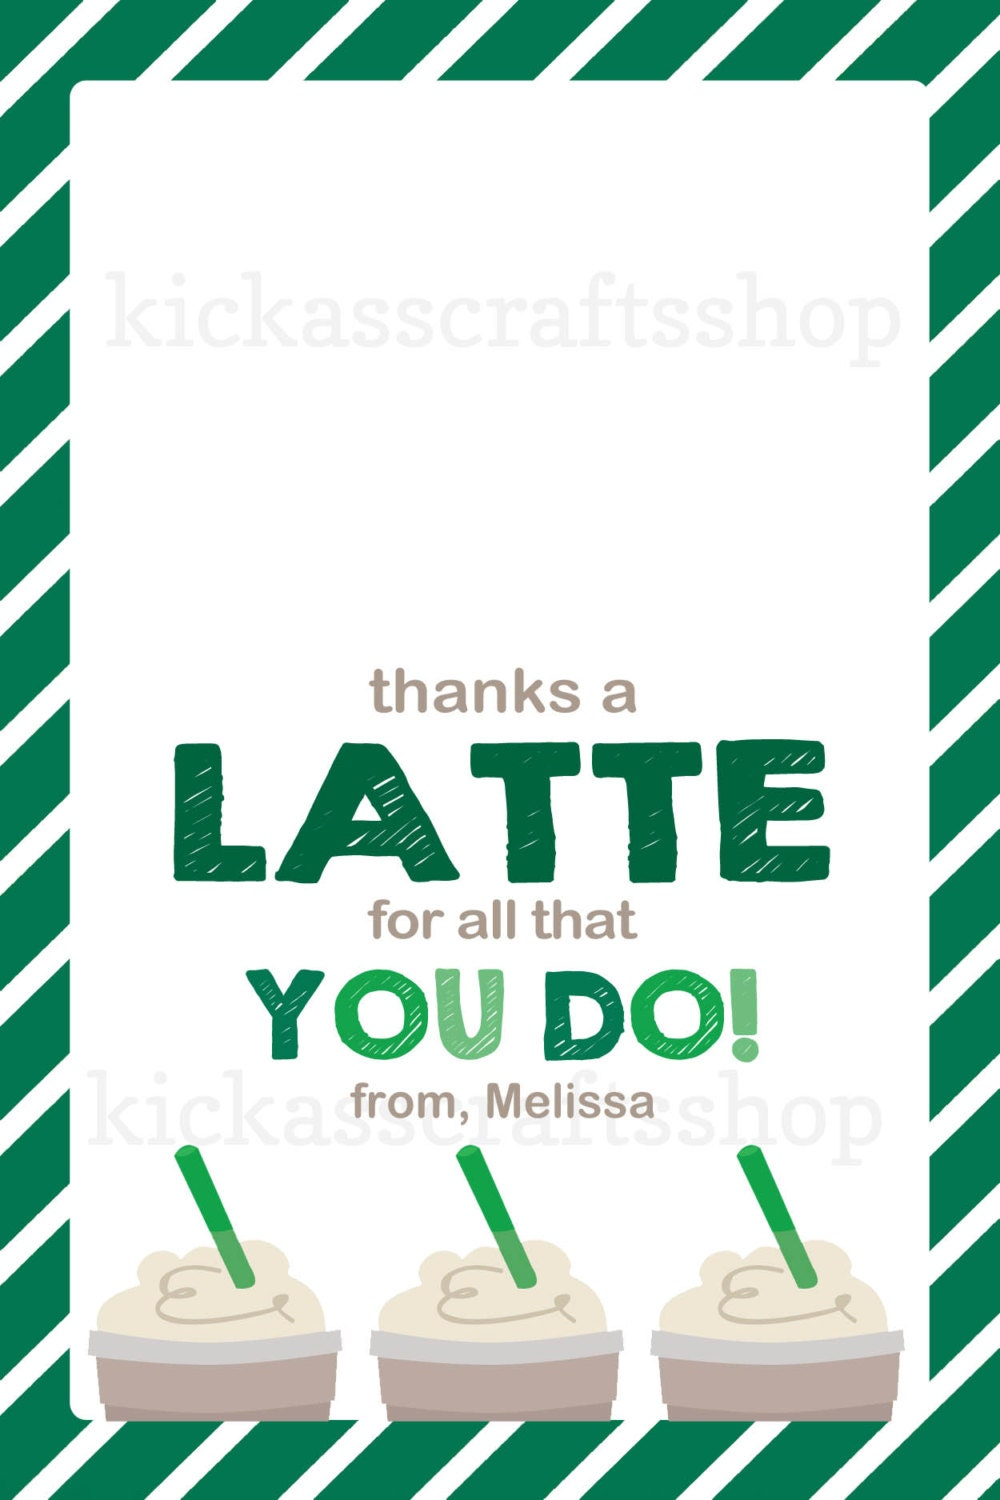 Printable starbucks inspired thanks a latte by Thanks for all you do gifts